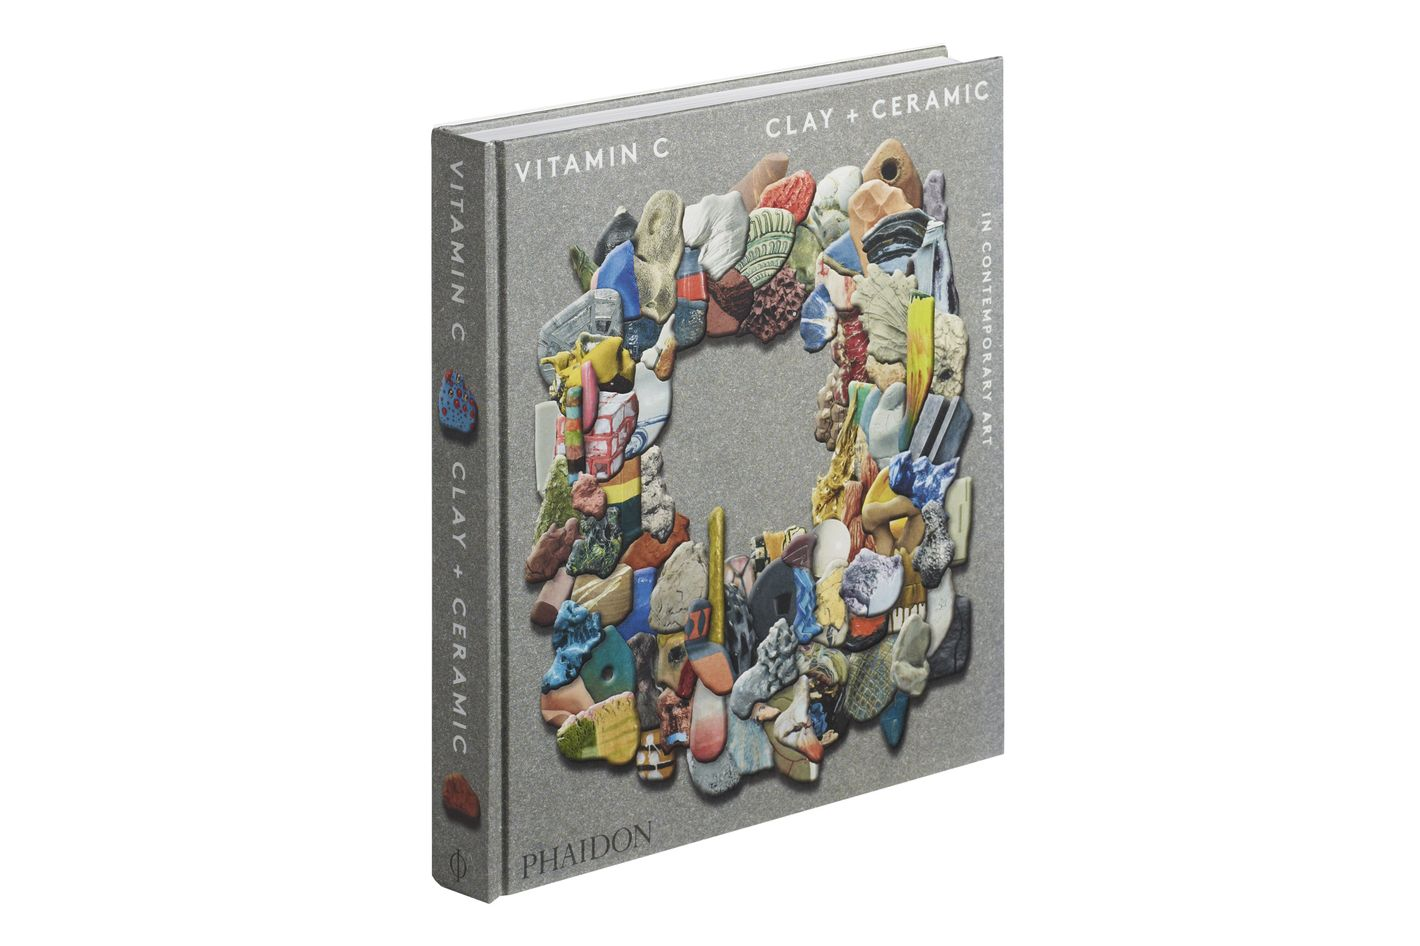 New colour me beautiful book 2016 - Because The Ceramics Craze Isn T Going Anywhere Vitamin C Surveys 100 Global Artists Working With Clay And Ceramics The Roster Includes Big Names Like Ai